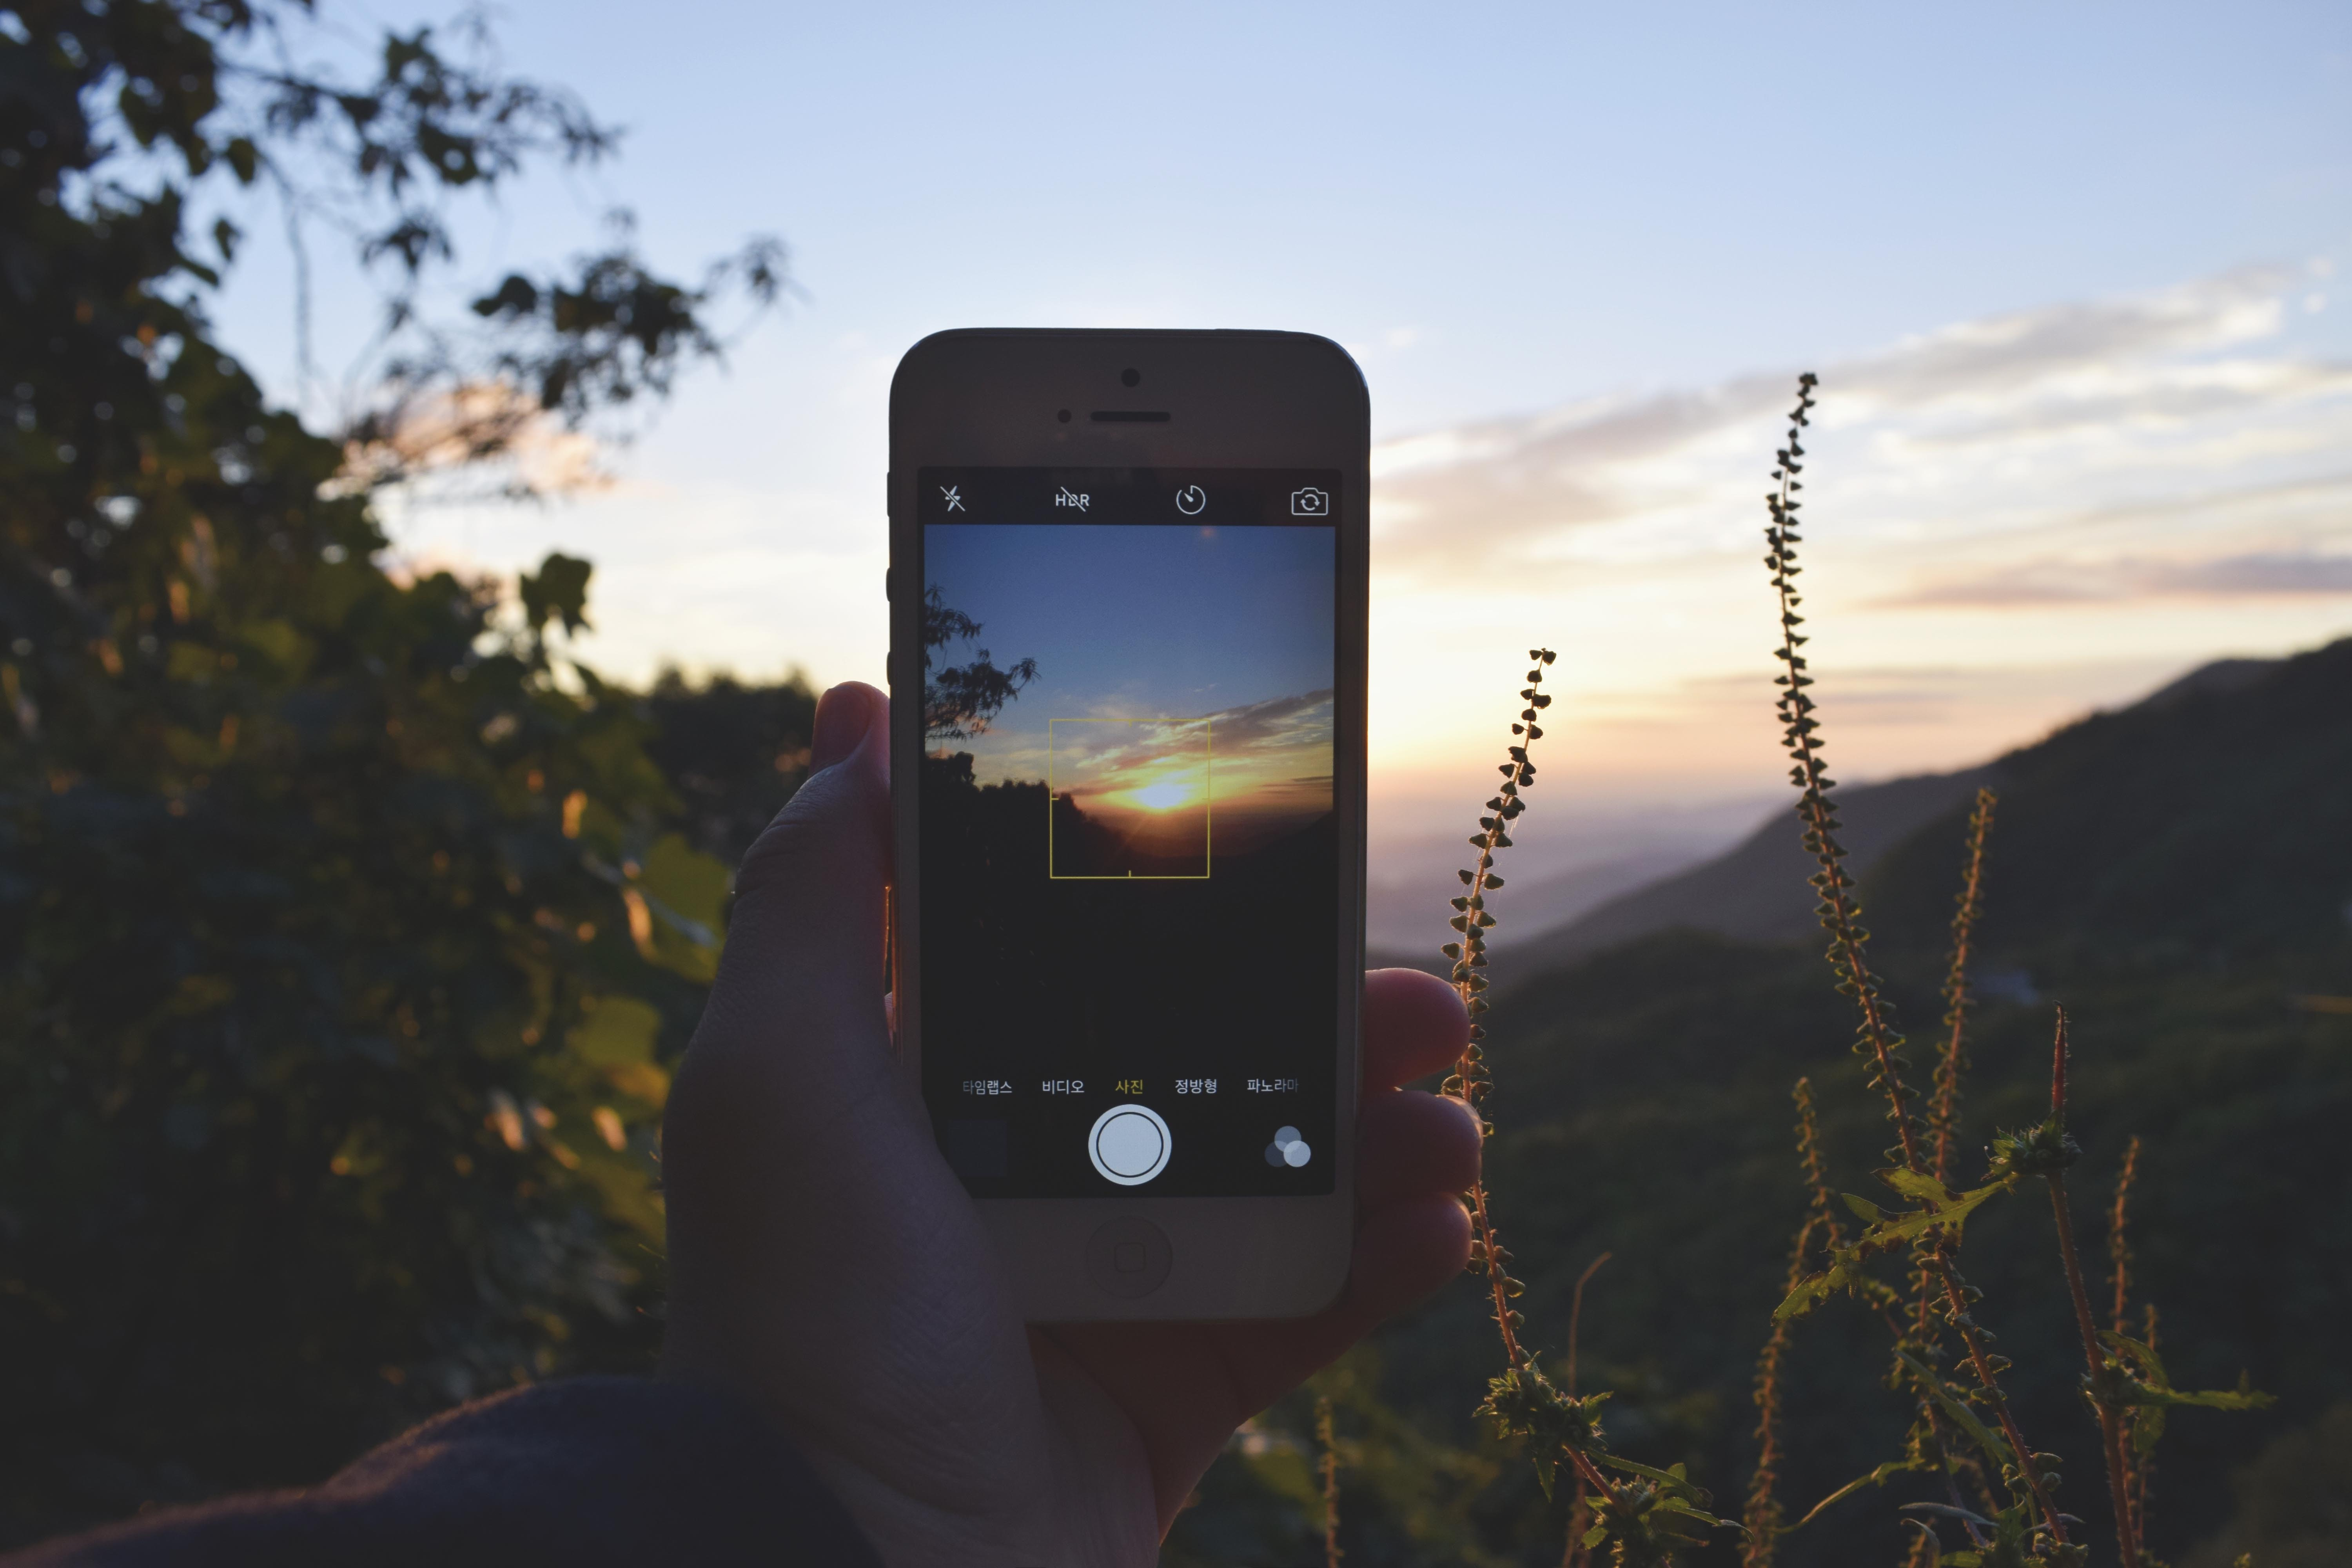 A sunset is taken through the camera of an iPhone as a snapshot against foliage and mountains.